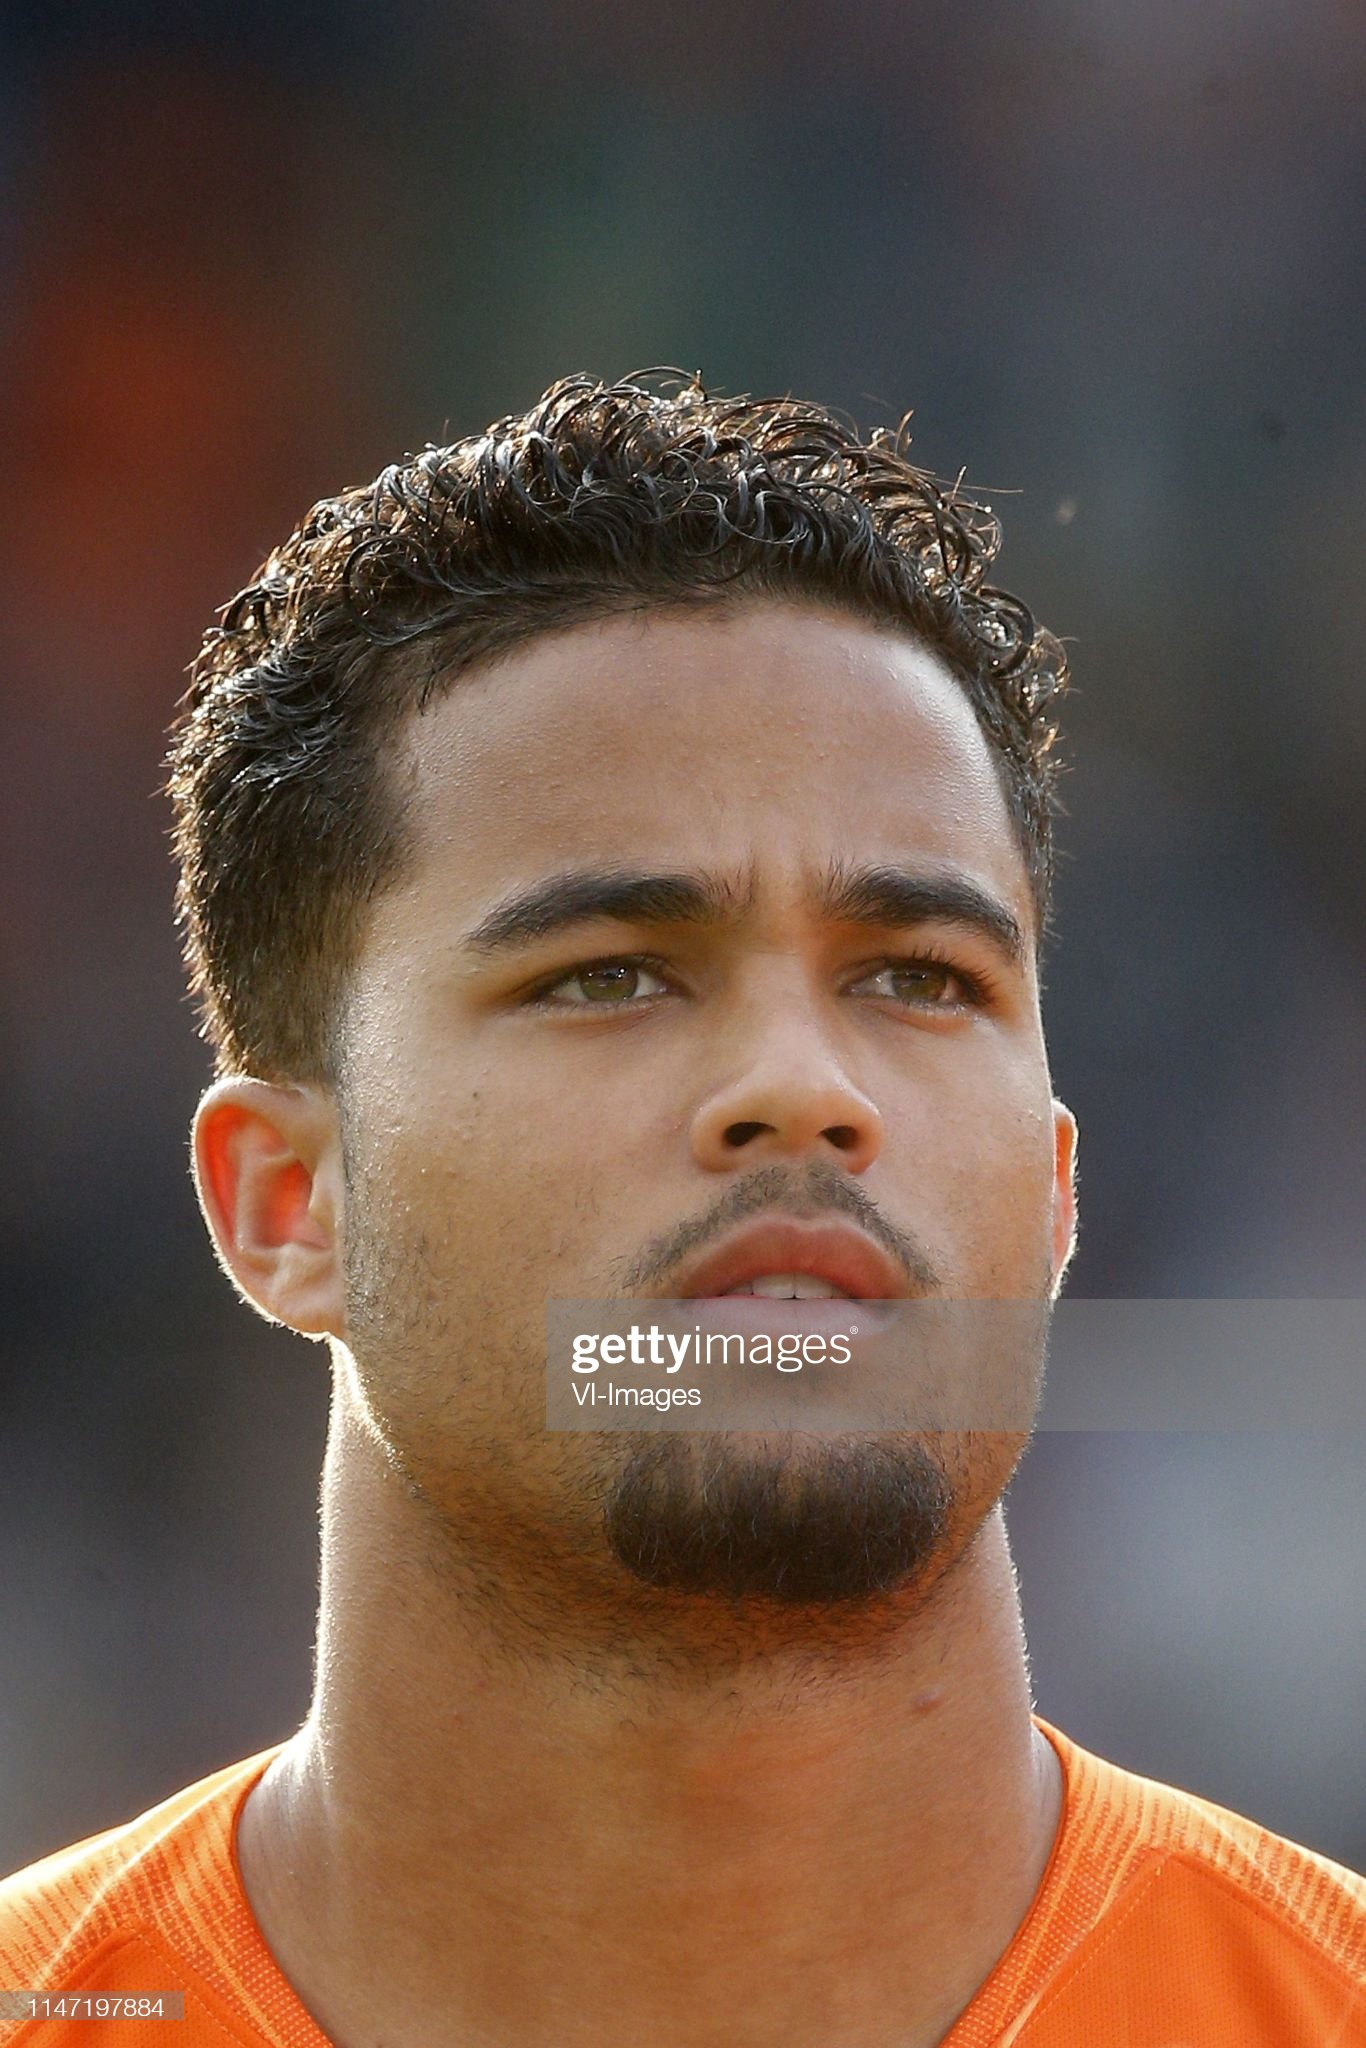 Raza negra y sus mezclas (Afrodescendientes) Justin-kluivert-of-holland-u21-during-the-international-friendly-picture-id1147197884?s=2048x2048